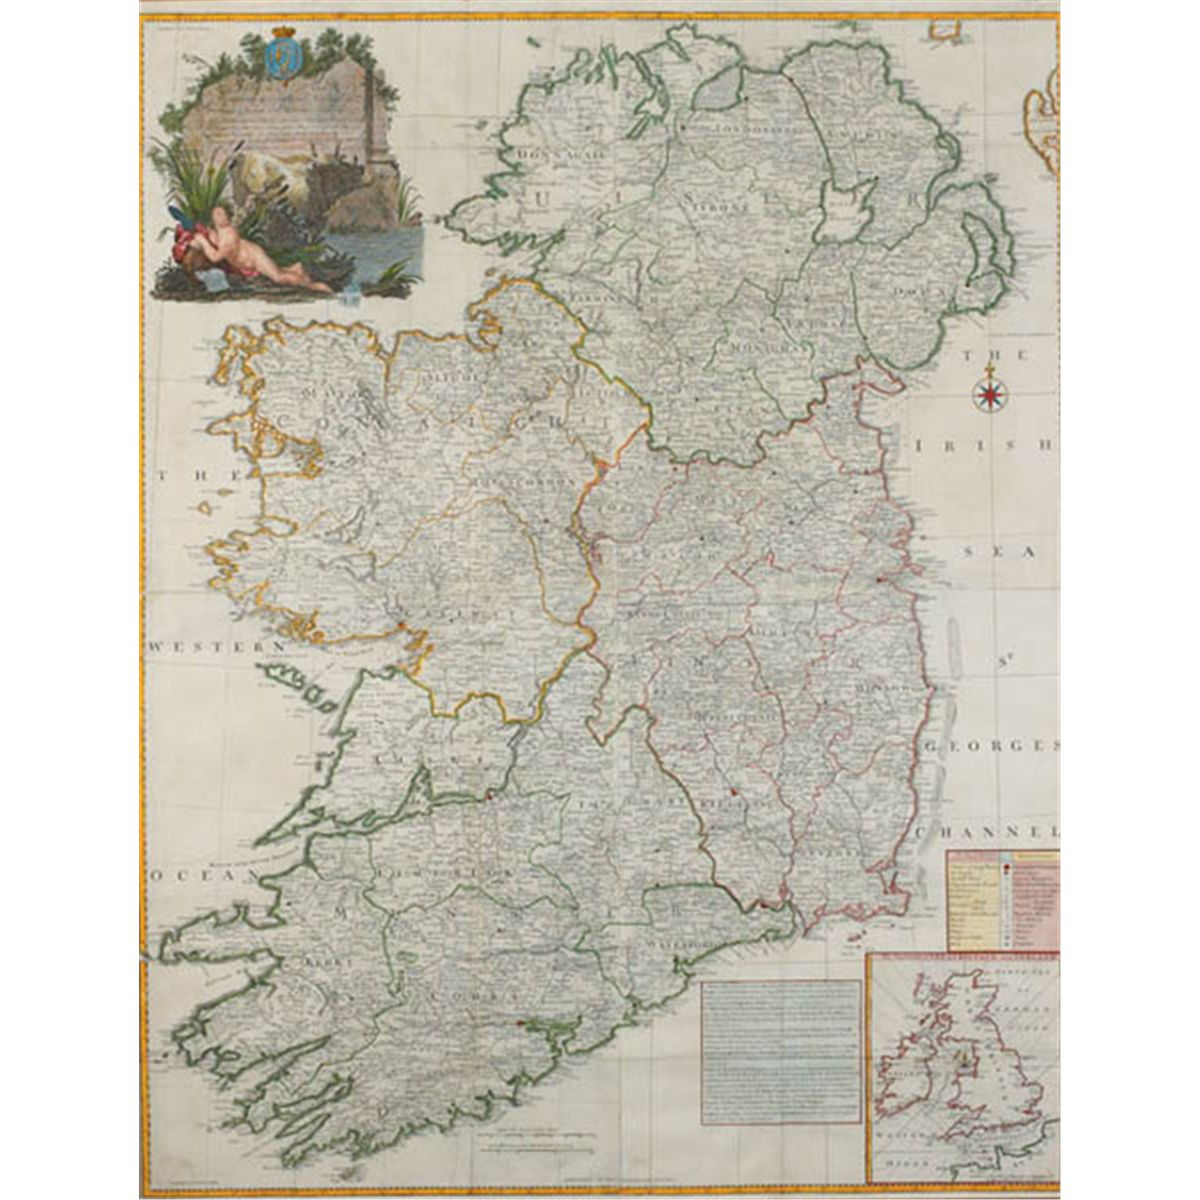 1794: John Rocque map of the Kingdom of Ireland on republic of china map, democratic republic of the congo map, southern ireland map, kingdom of ireland flag, union of soviet socialist republics map, isle of man map, duchy of milan map, republic of ireland map, provinces of ireland map, grand duchy of tuscany map, confederate states of america map,